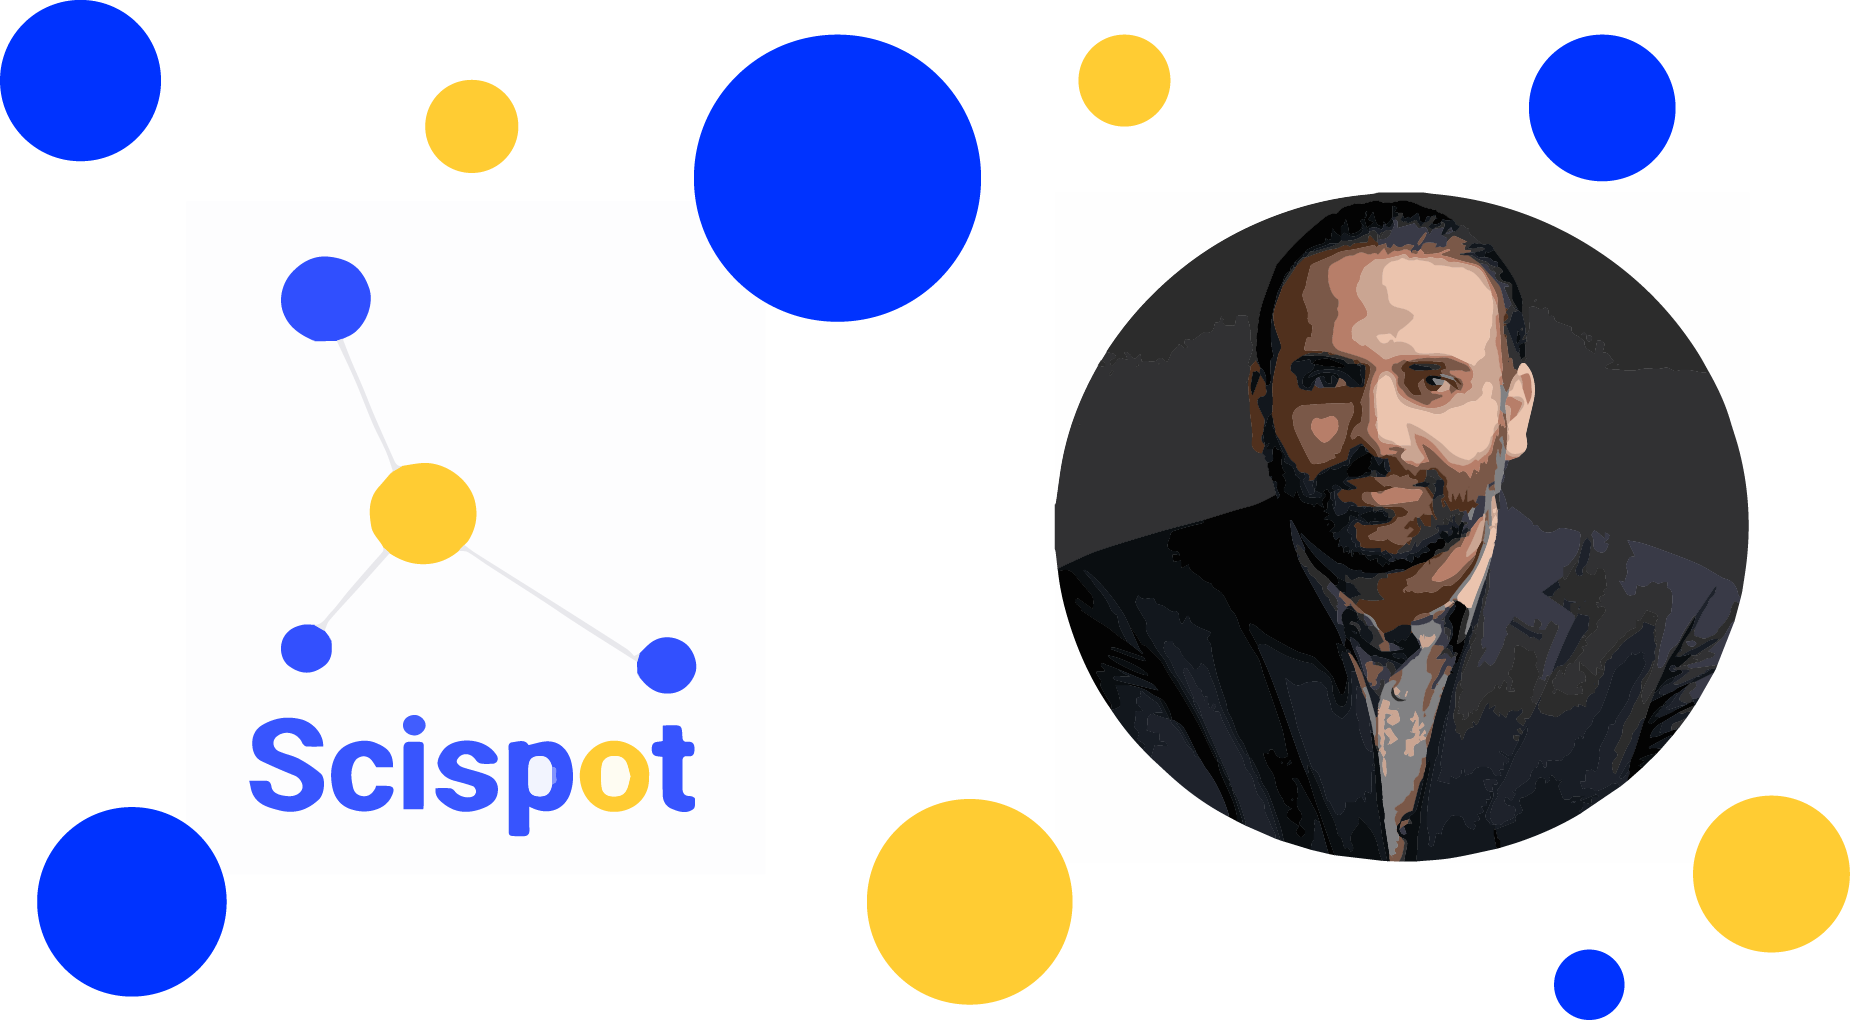 Why I started Scispot